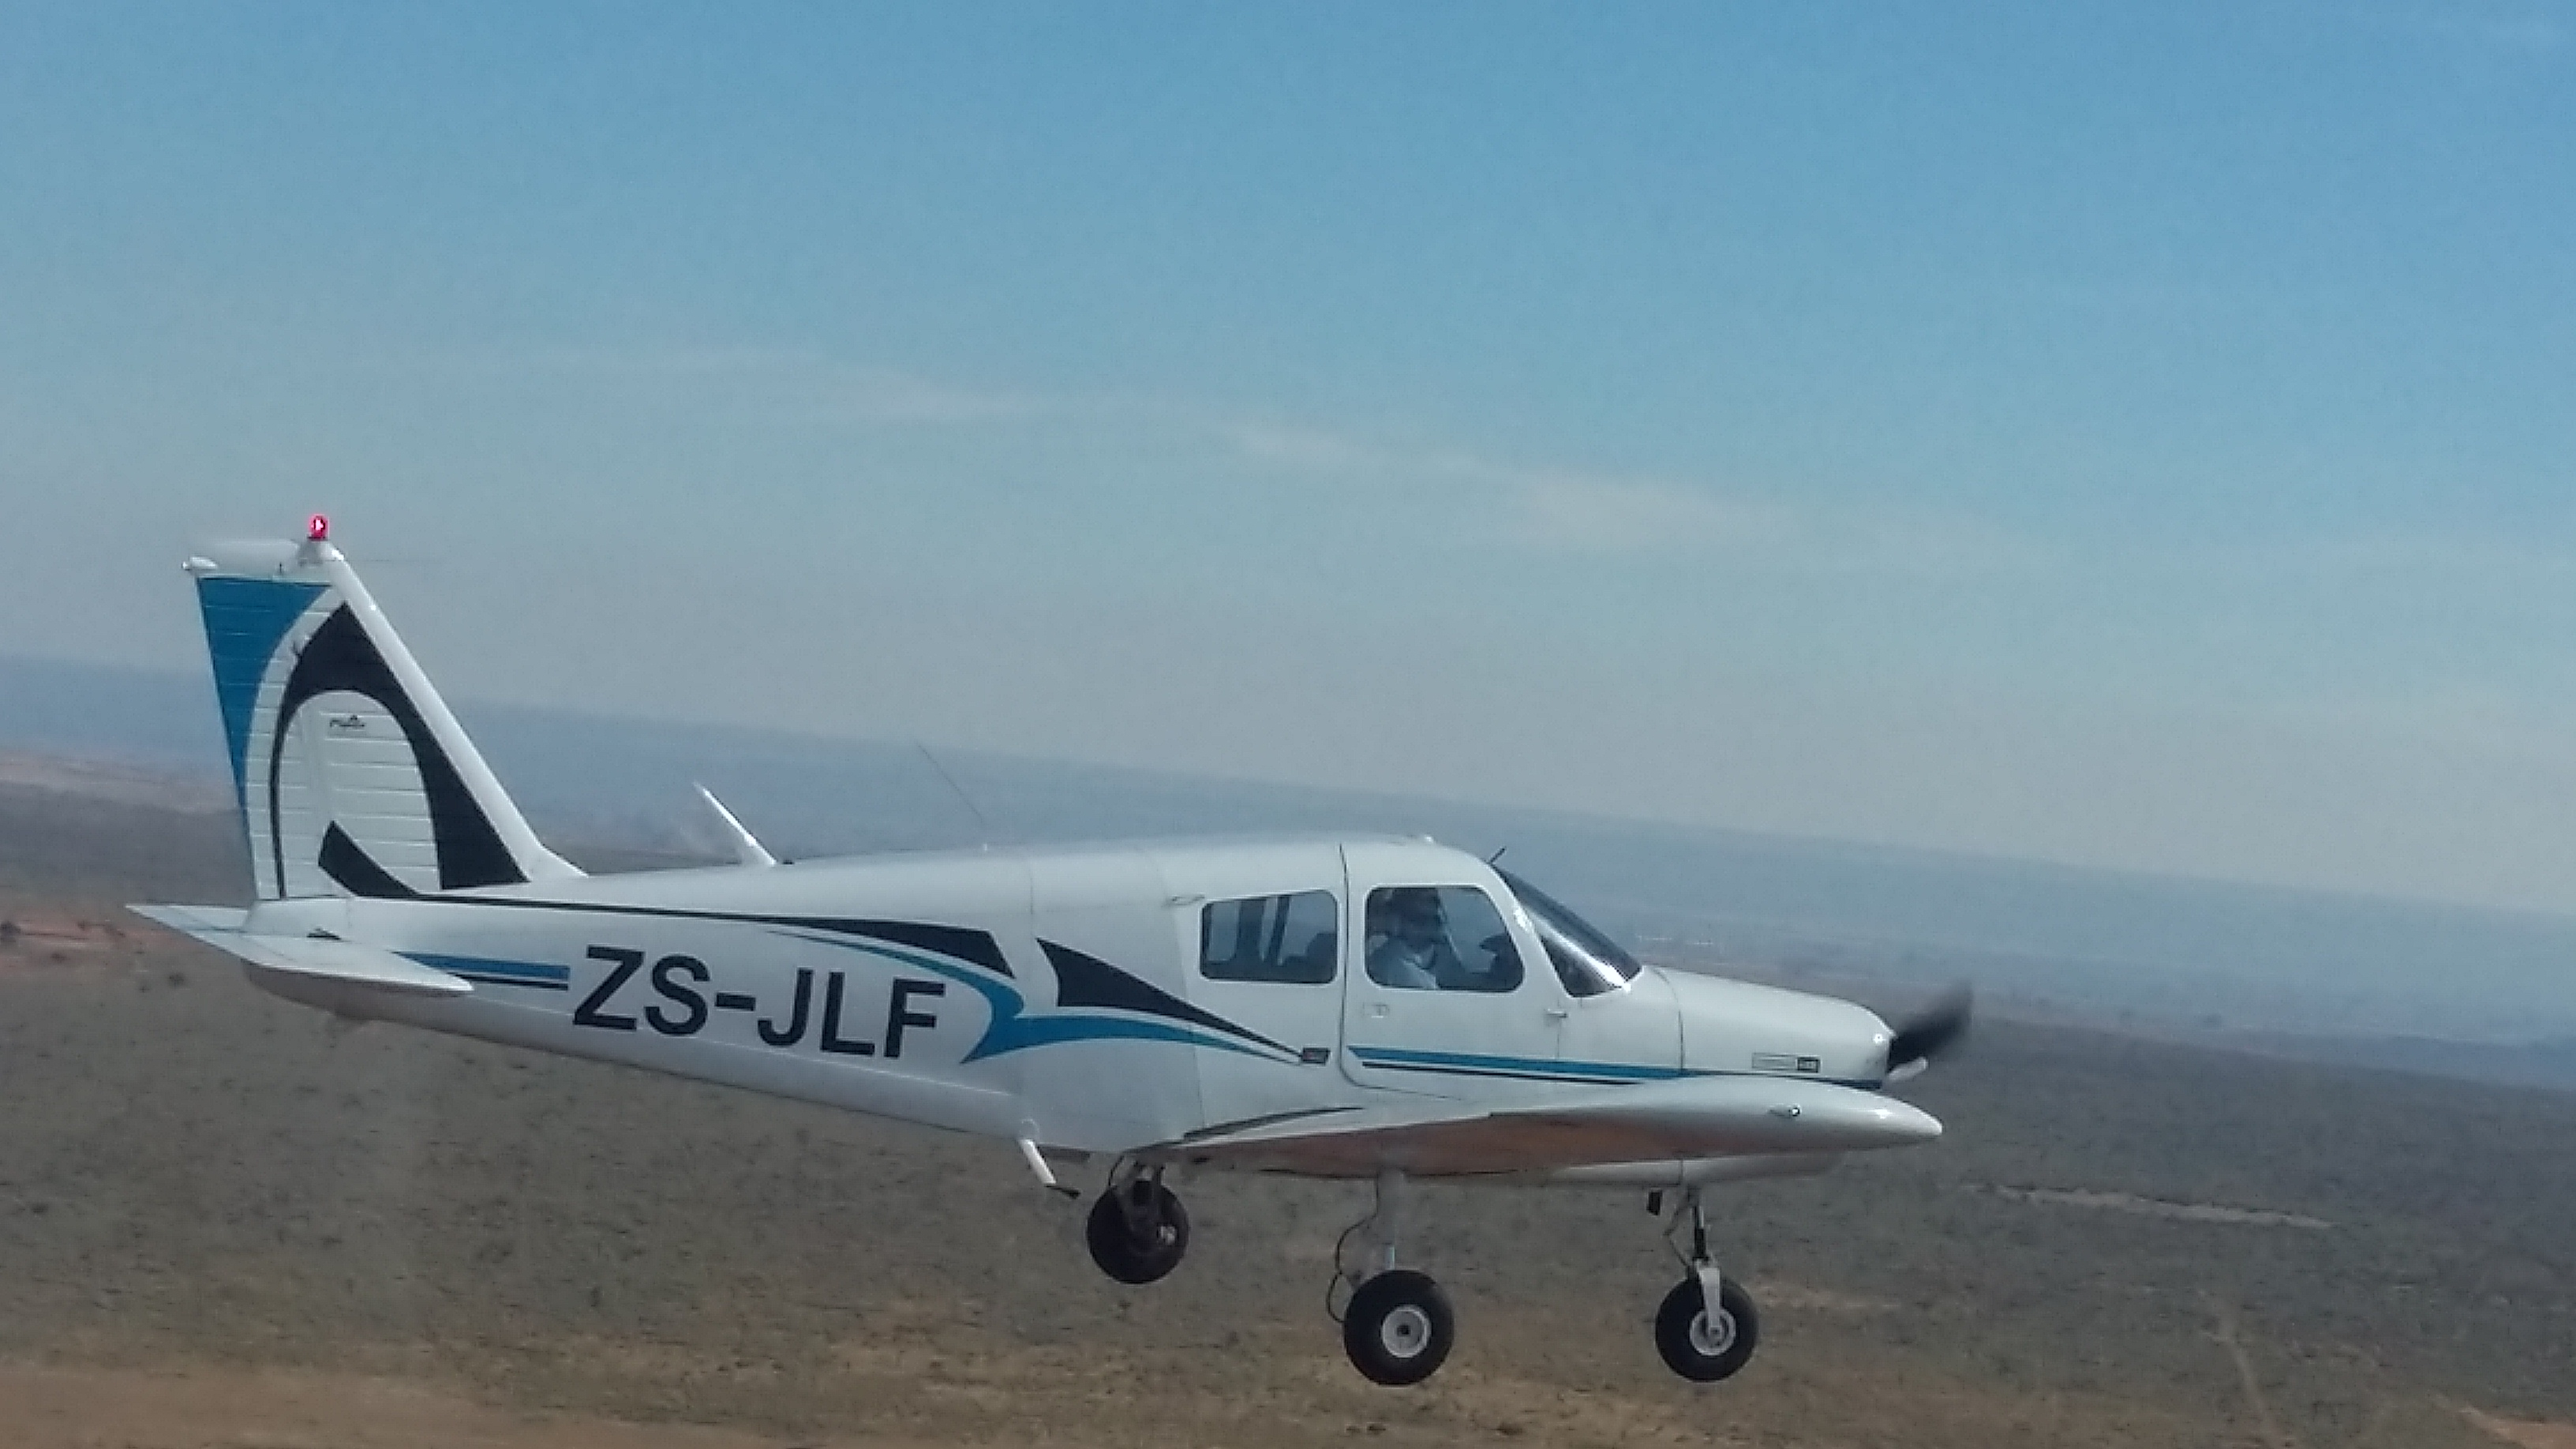 Private pilot training on a Mooney M20